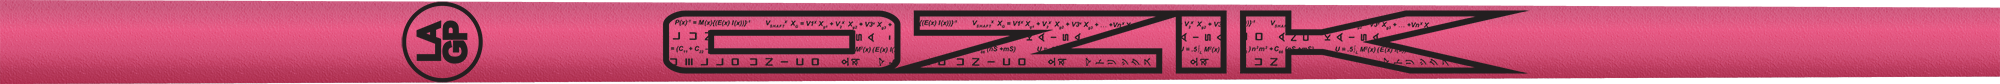 Ozik White Tie: Neon Pink Black Textured - Wood 60 R